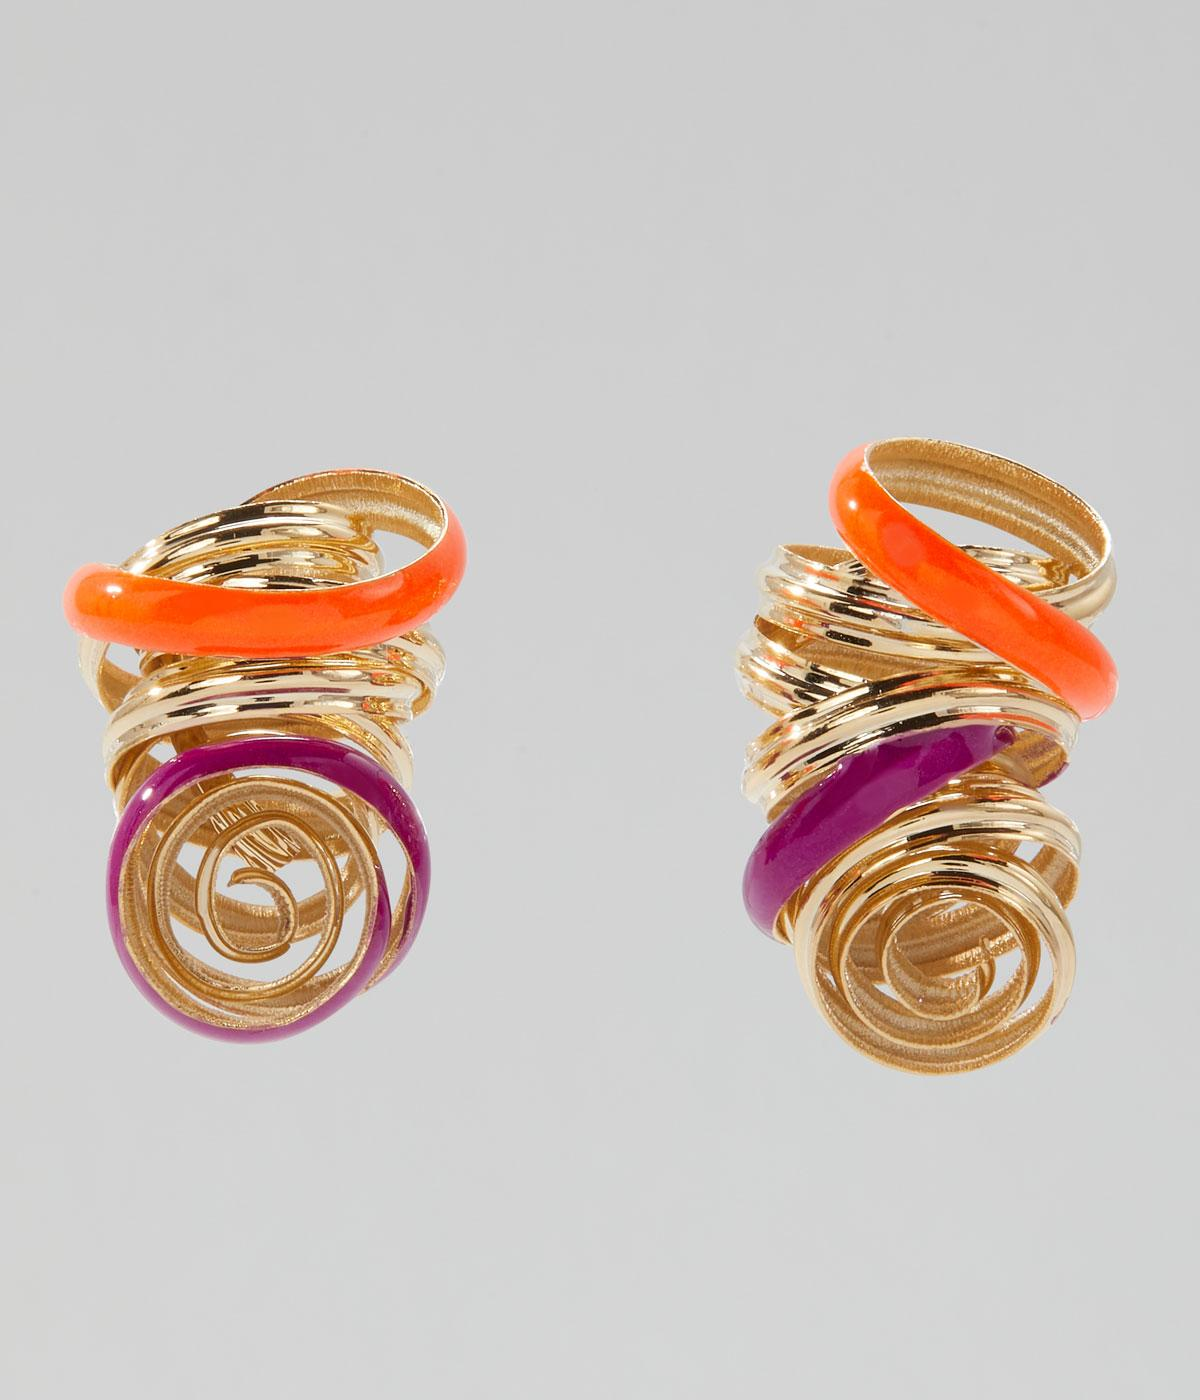 Gold-coated brass curly earrings with orange and pink on